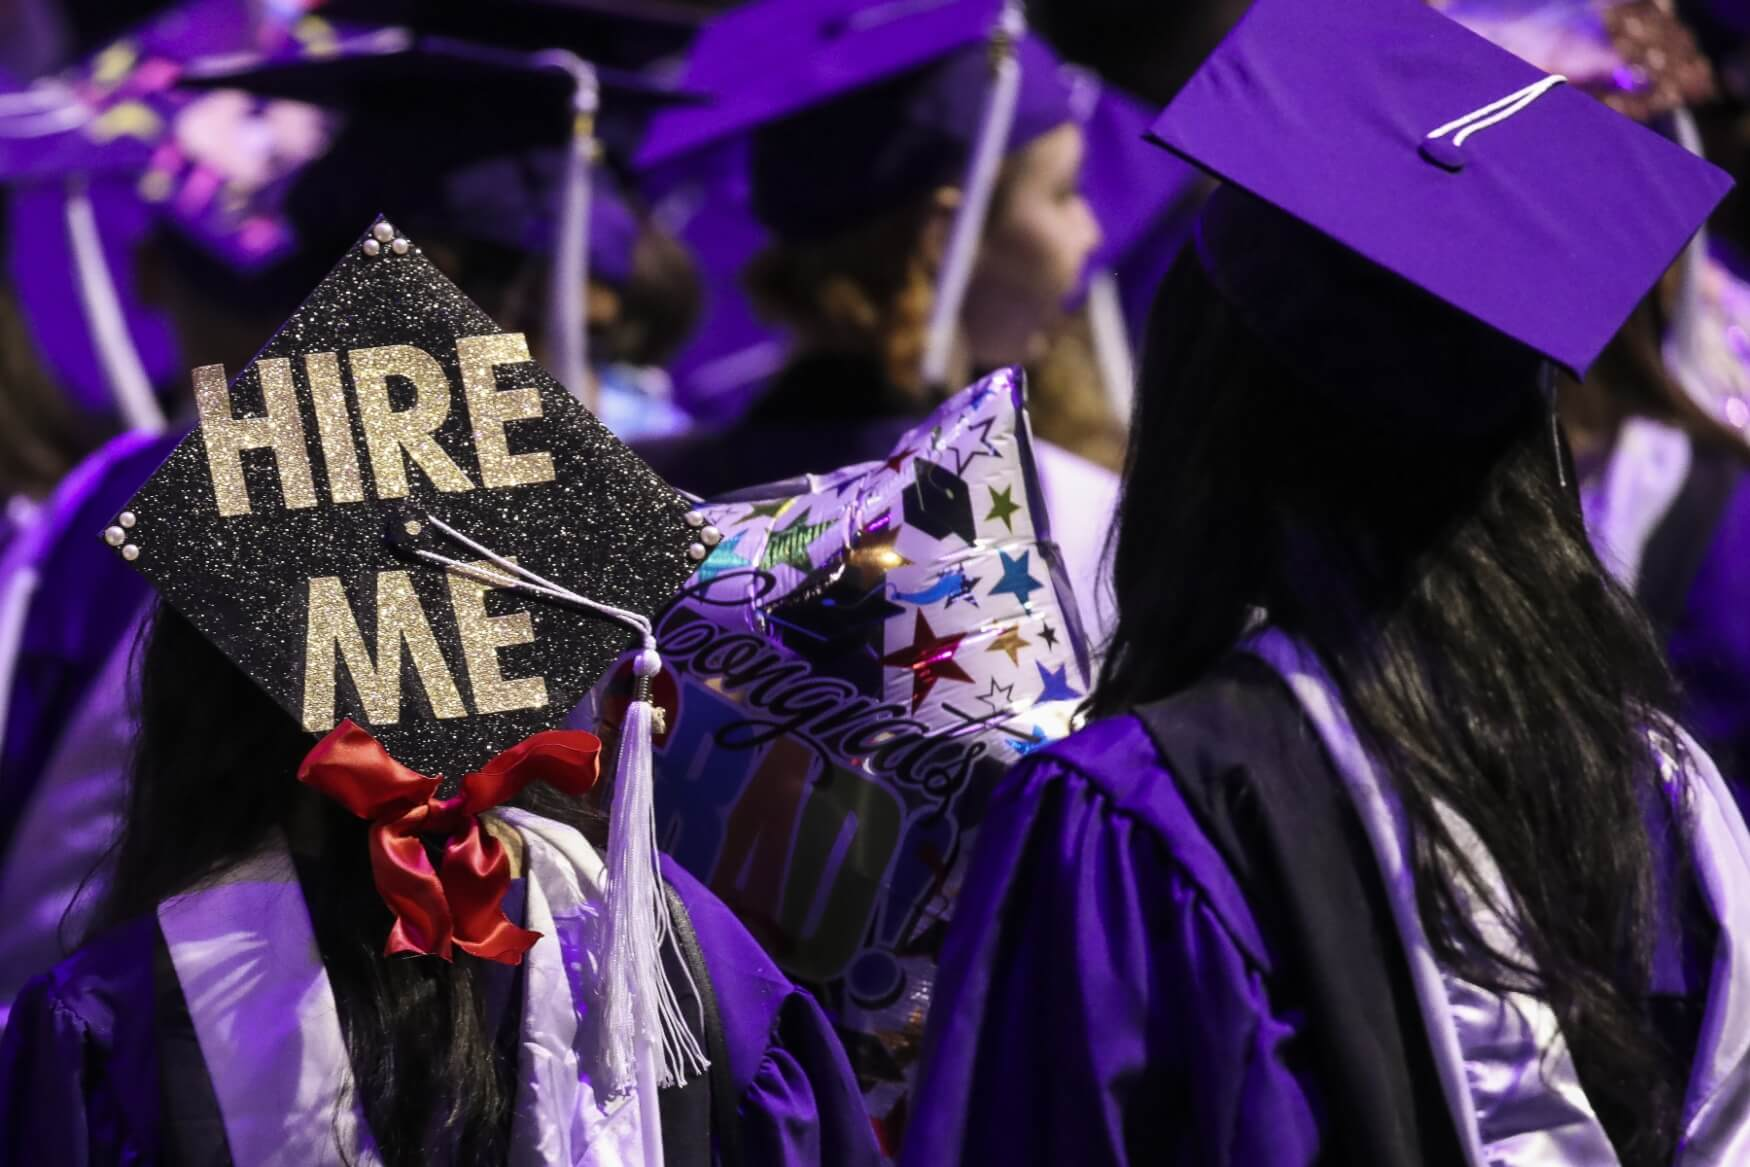 Yay or nay: The morality of canceling student loan debt